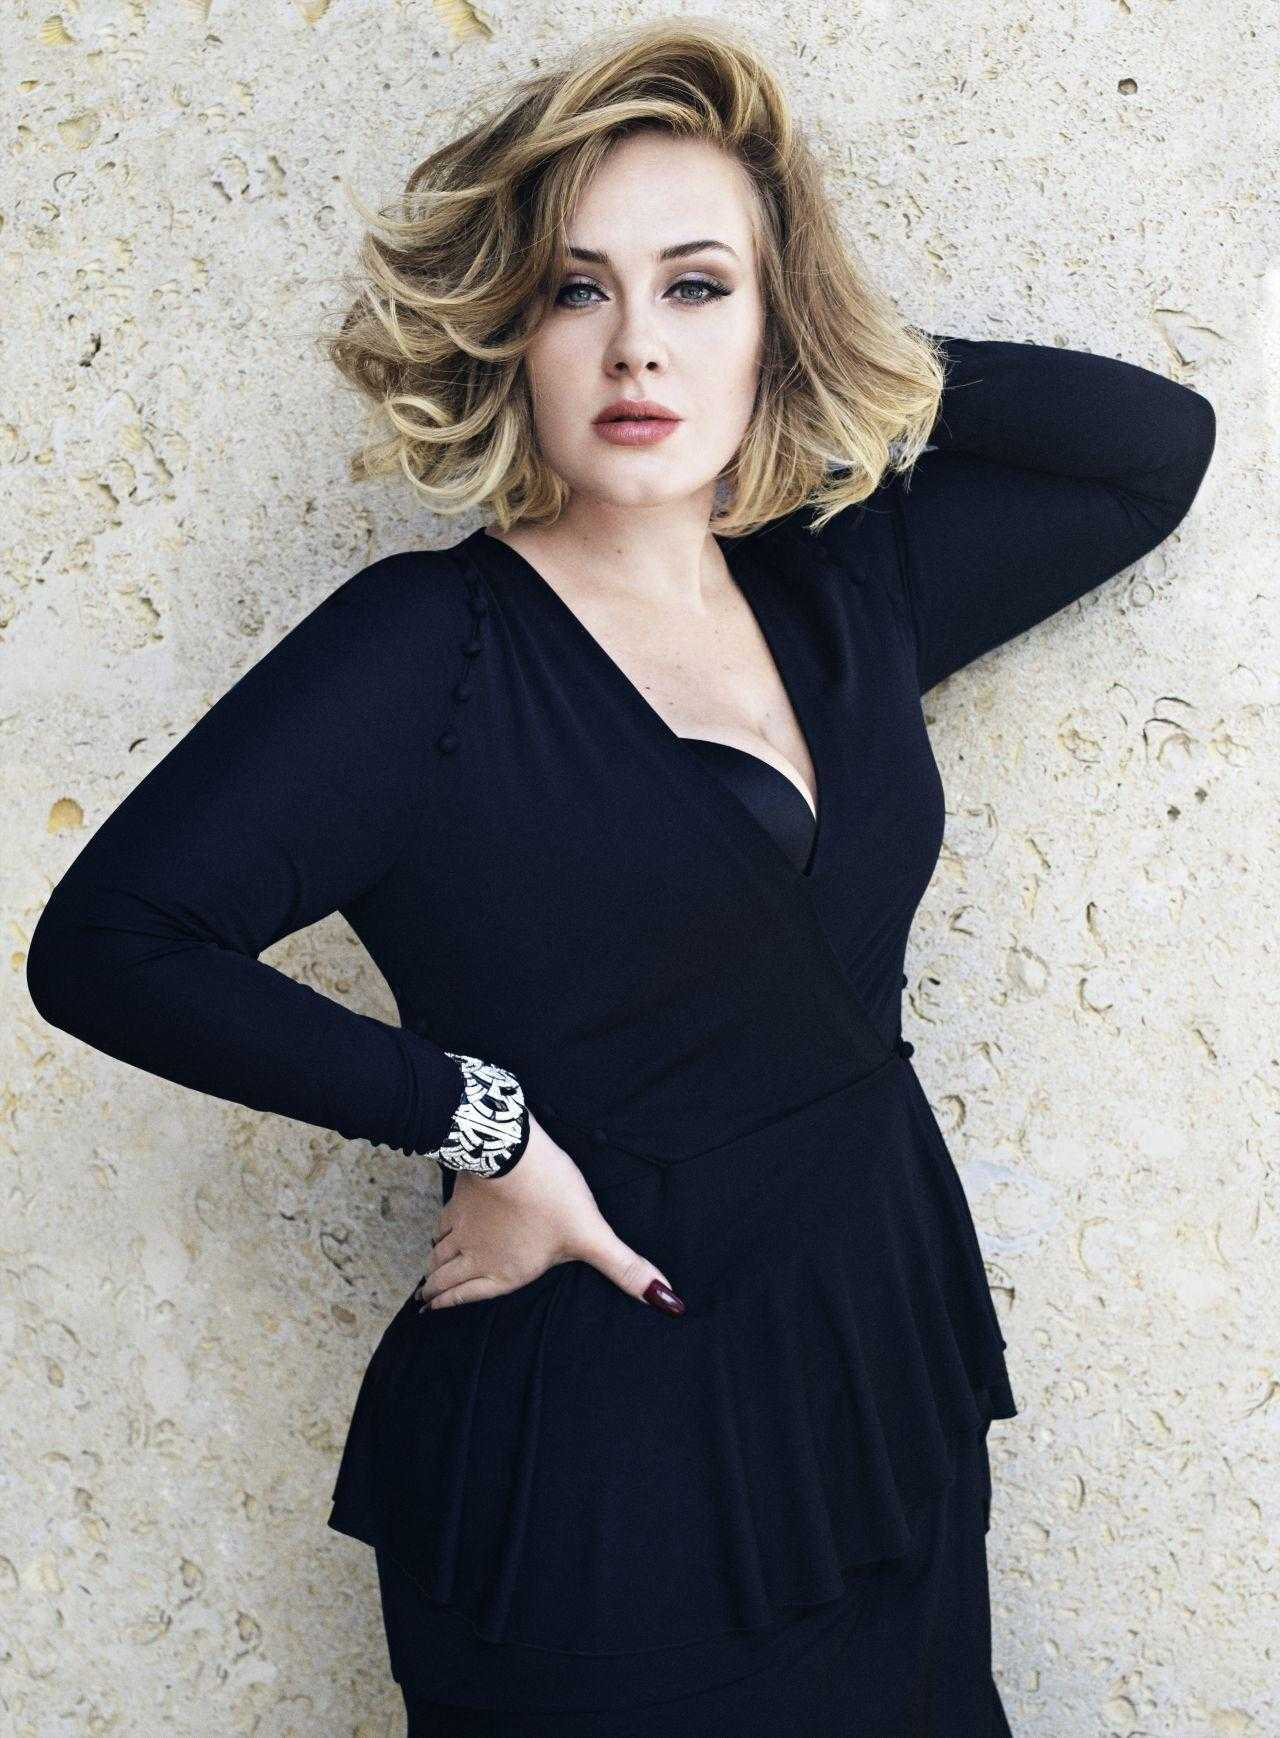 Adele sexy cleavage pics